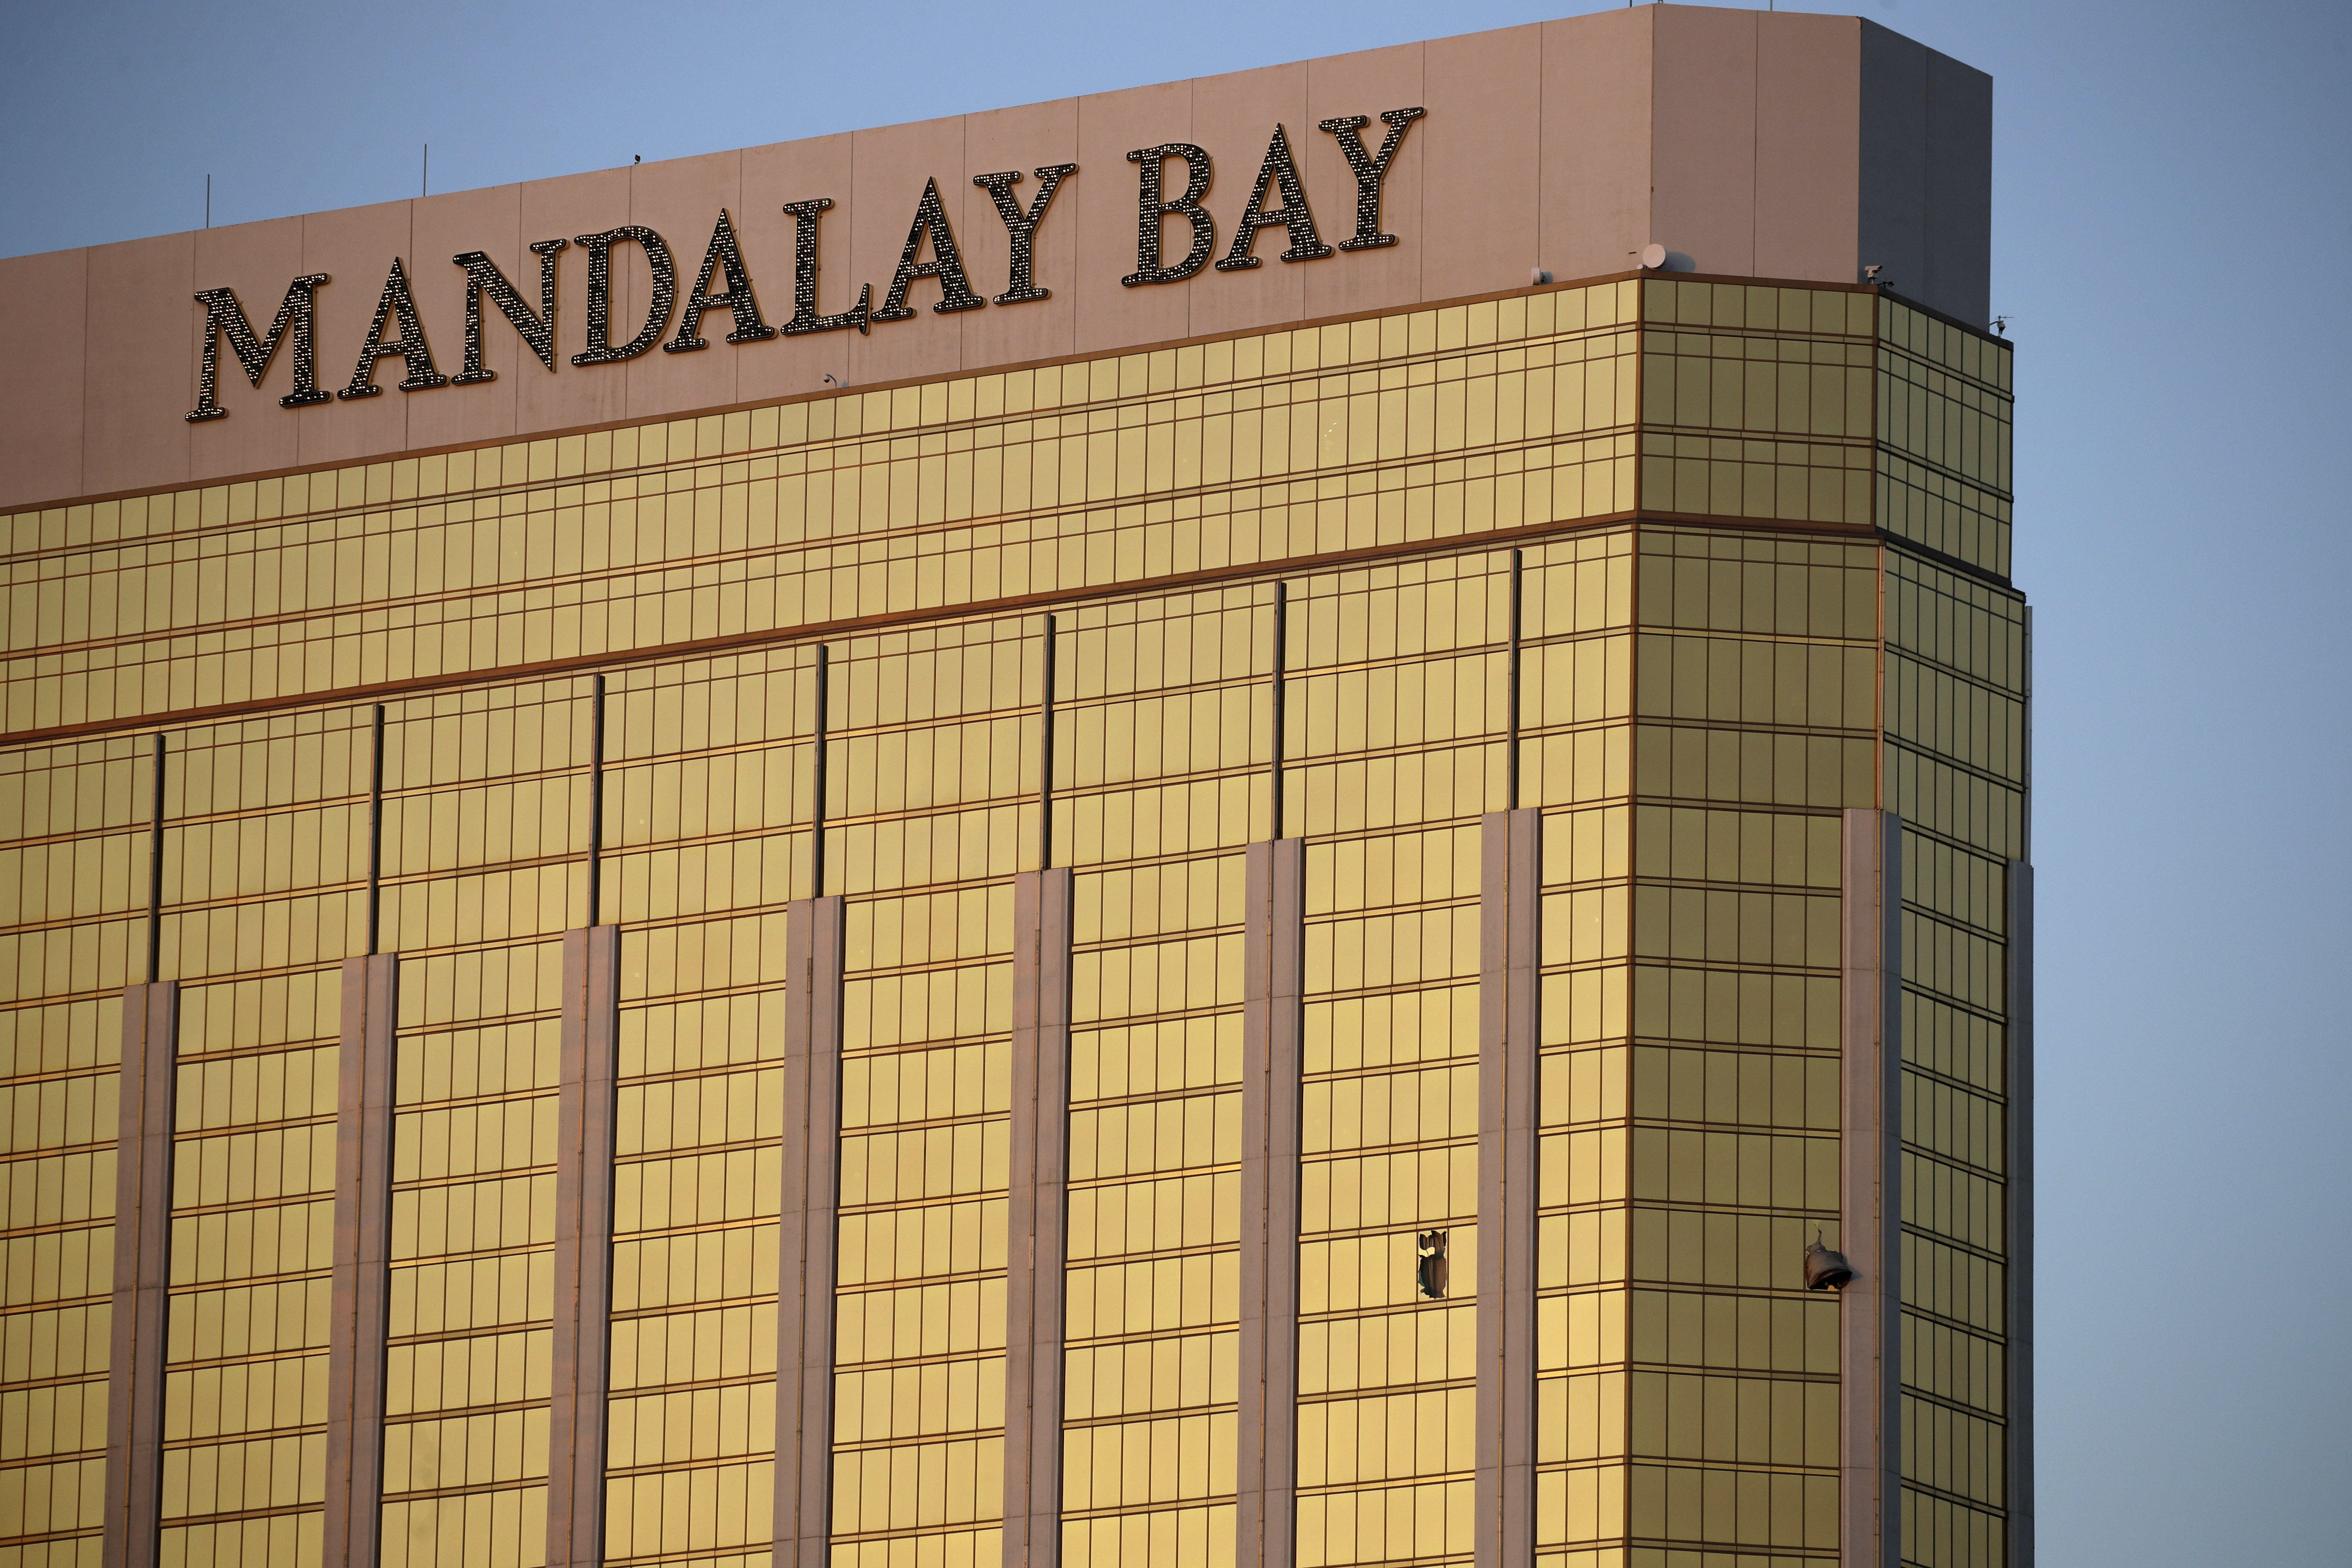 Created At 2017 10 13 0634 Nathalie Underwear G String Pamela Ntc 2028 Mix Colour News9com Hotel Tries To Clarify Misinformation Over Las Vegas Shooting Timeline